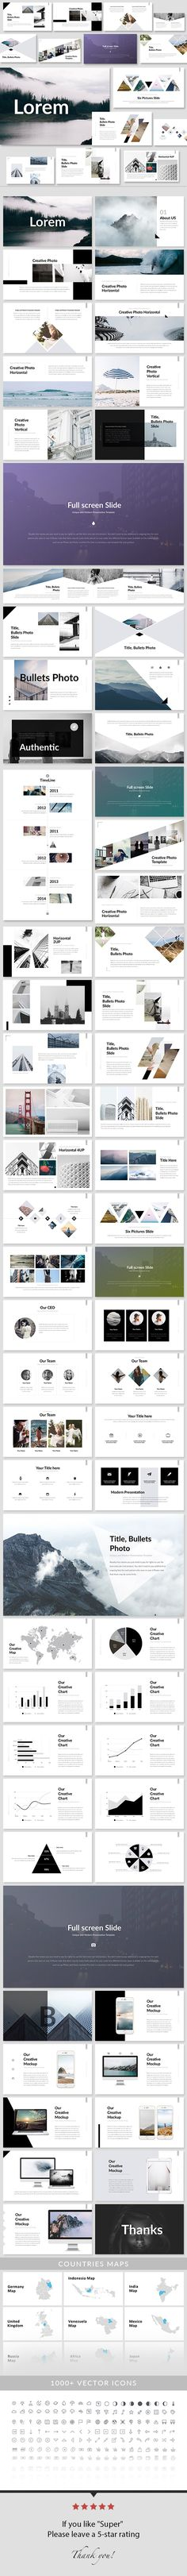 Lorem - Keynote Presentation Template - Creative #Keynote #Templates Download here: https://graphicriver.net/item/lorem-keynote-presentation-template/19538699?ref=alena994